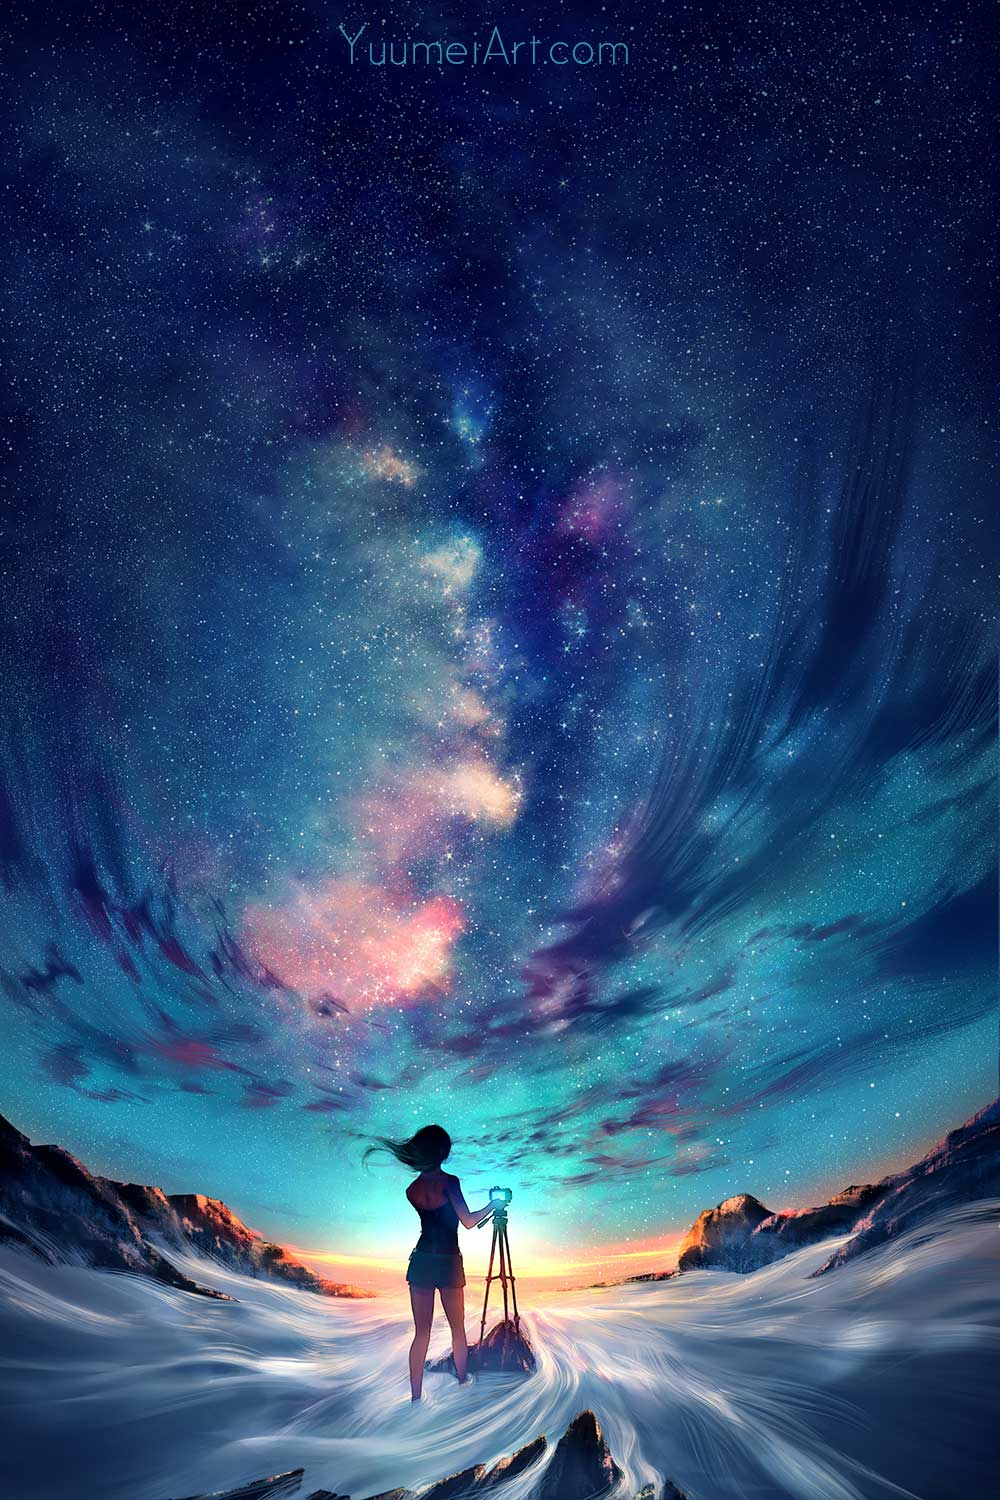 Capture The Sky by Artist Wenqing Yan, aka Yuumei